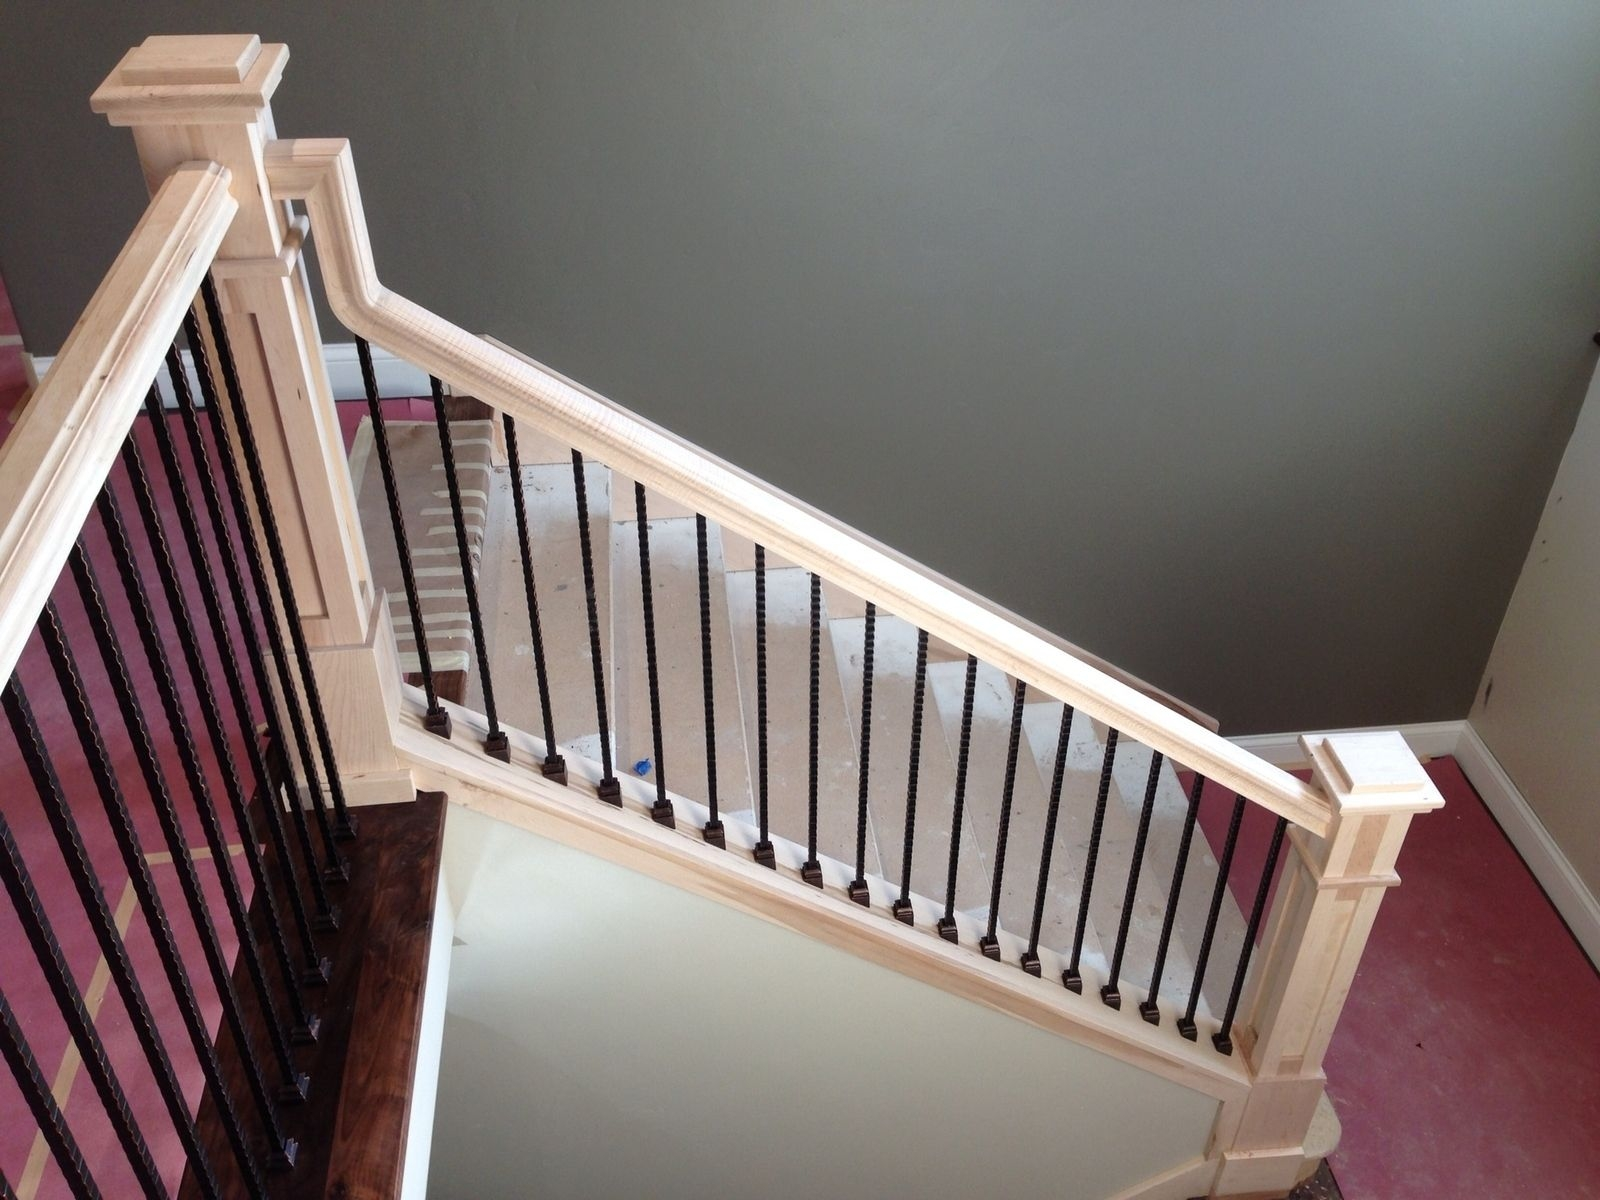 Hand Made Staircase 4 By Monarch Cabinetry Custommade Com | Craftsman Style Newel Post | Design | Staircase | Railing | Square | Interior